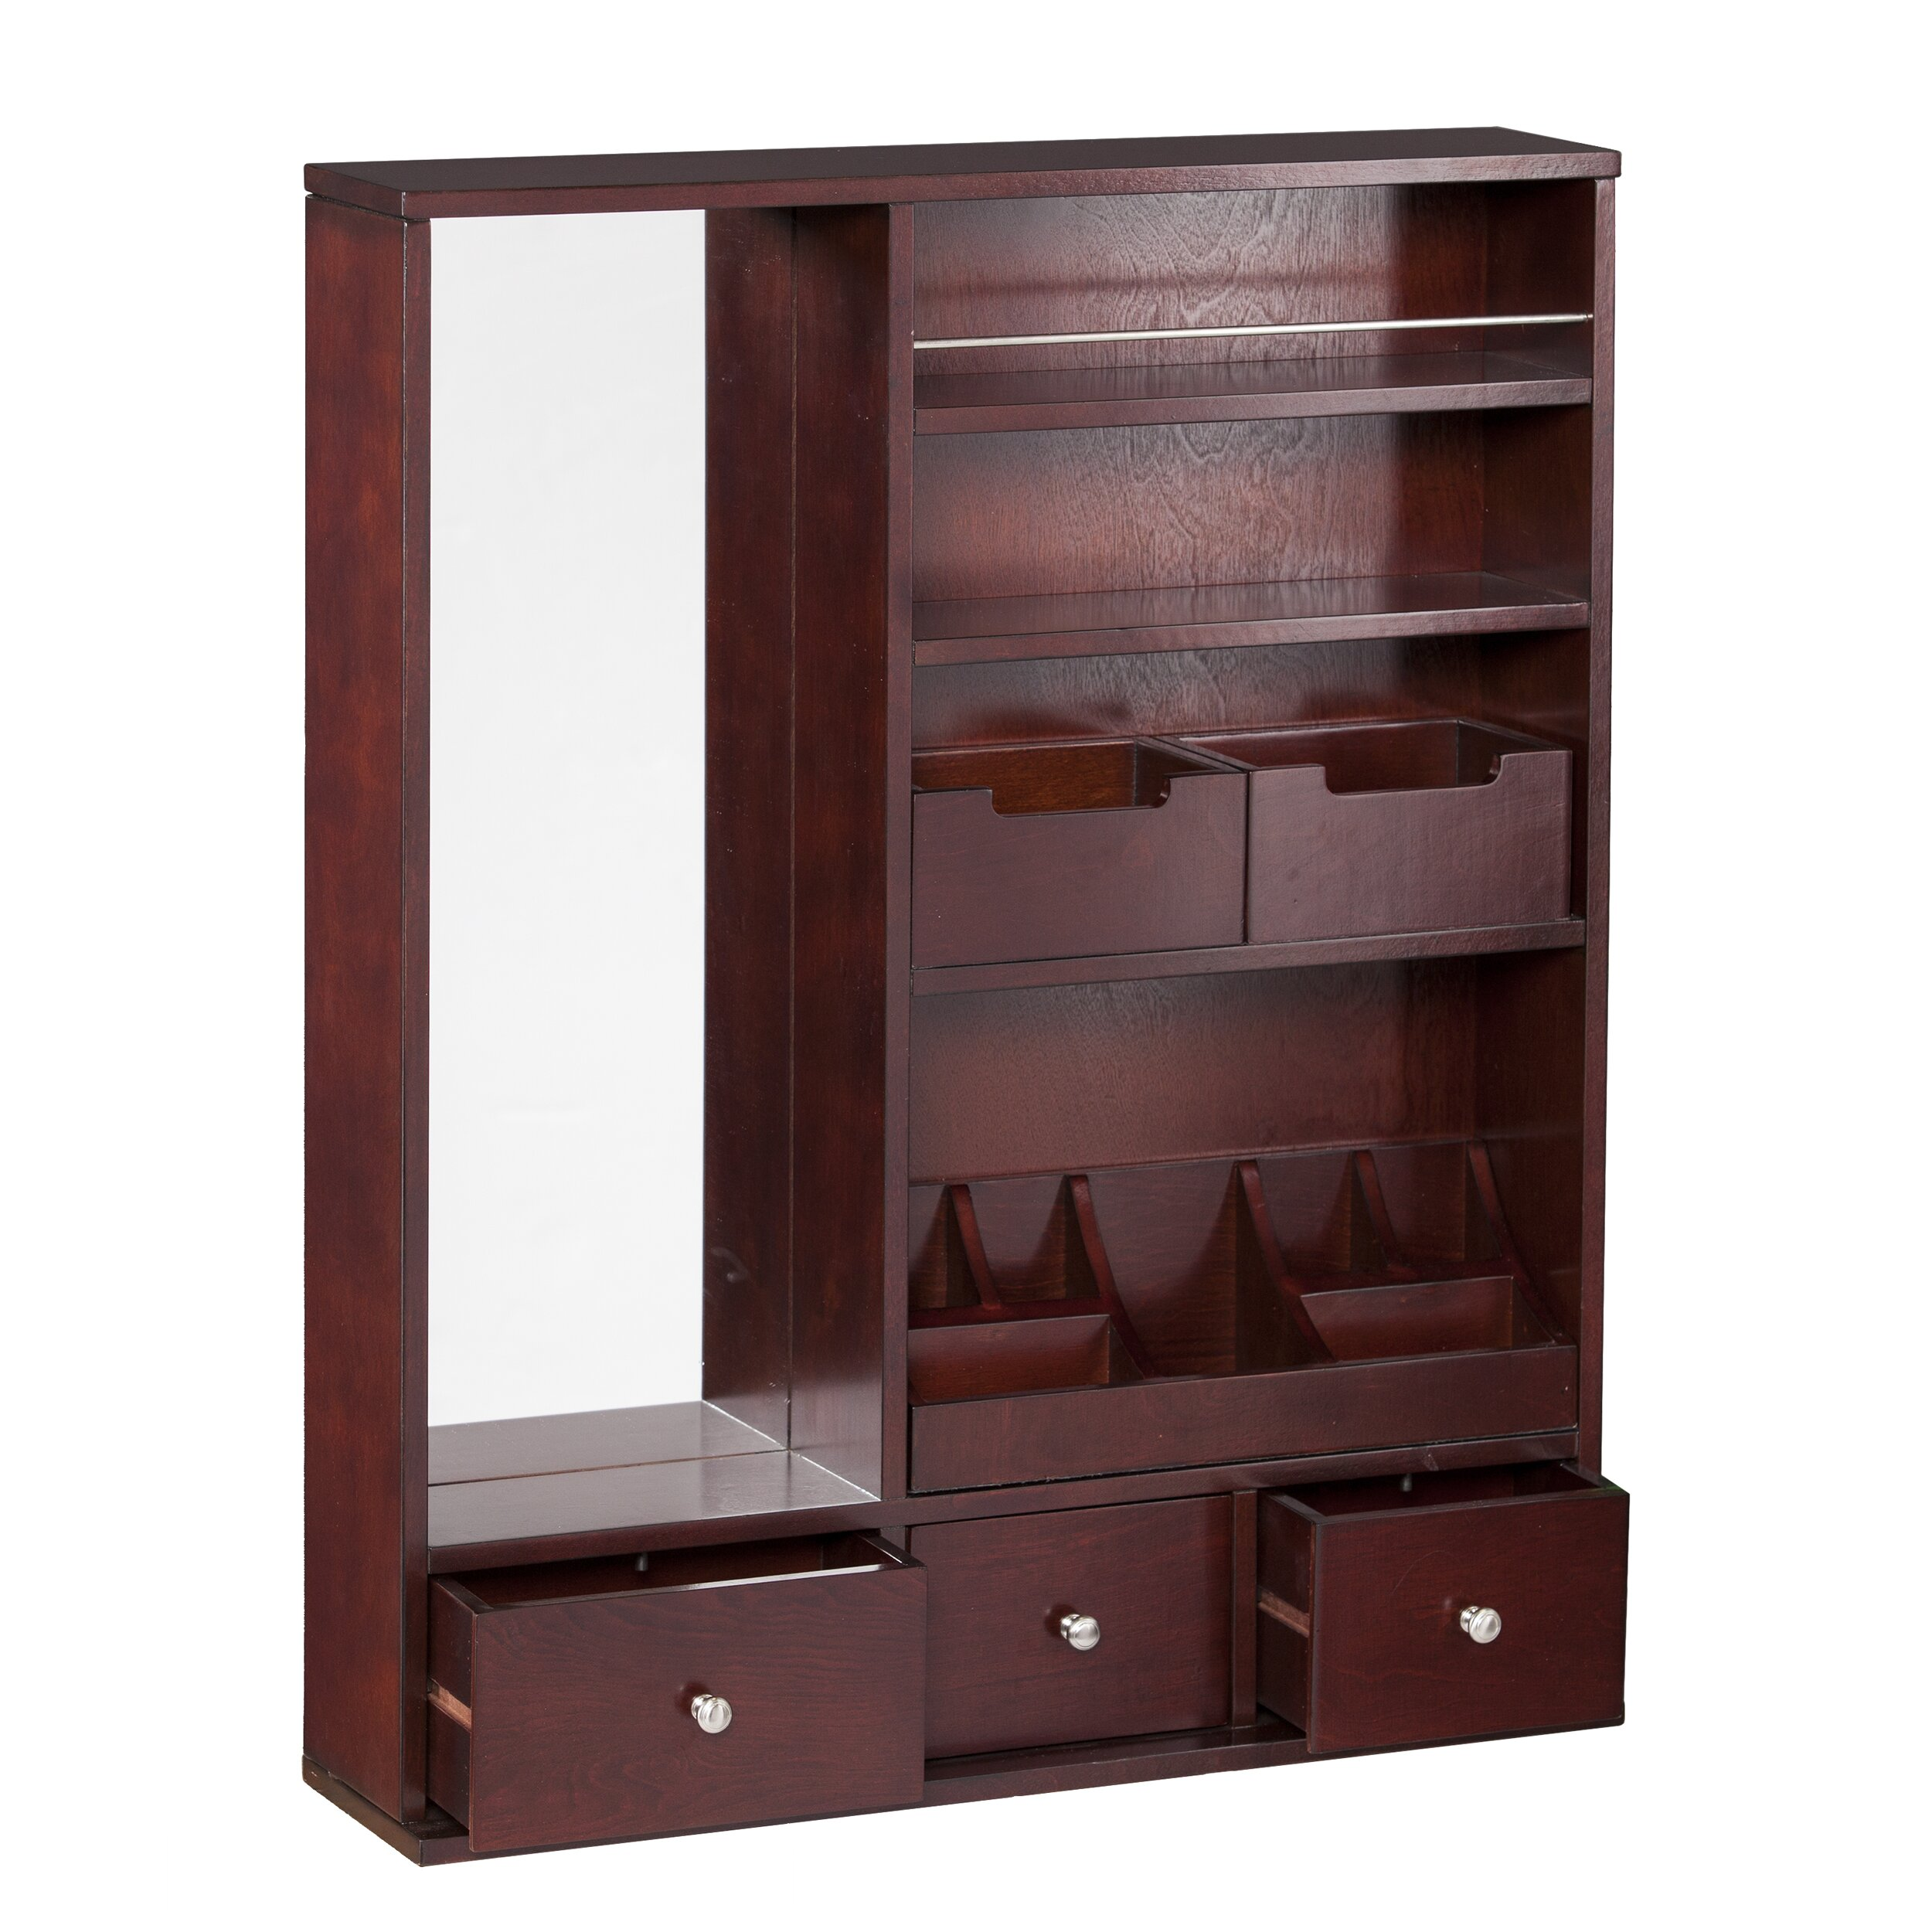 Over The Door Jewelry Armoire: Darby Home Co Apollo Over The Door Jewelry Armoire With